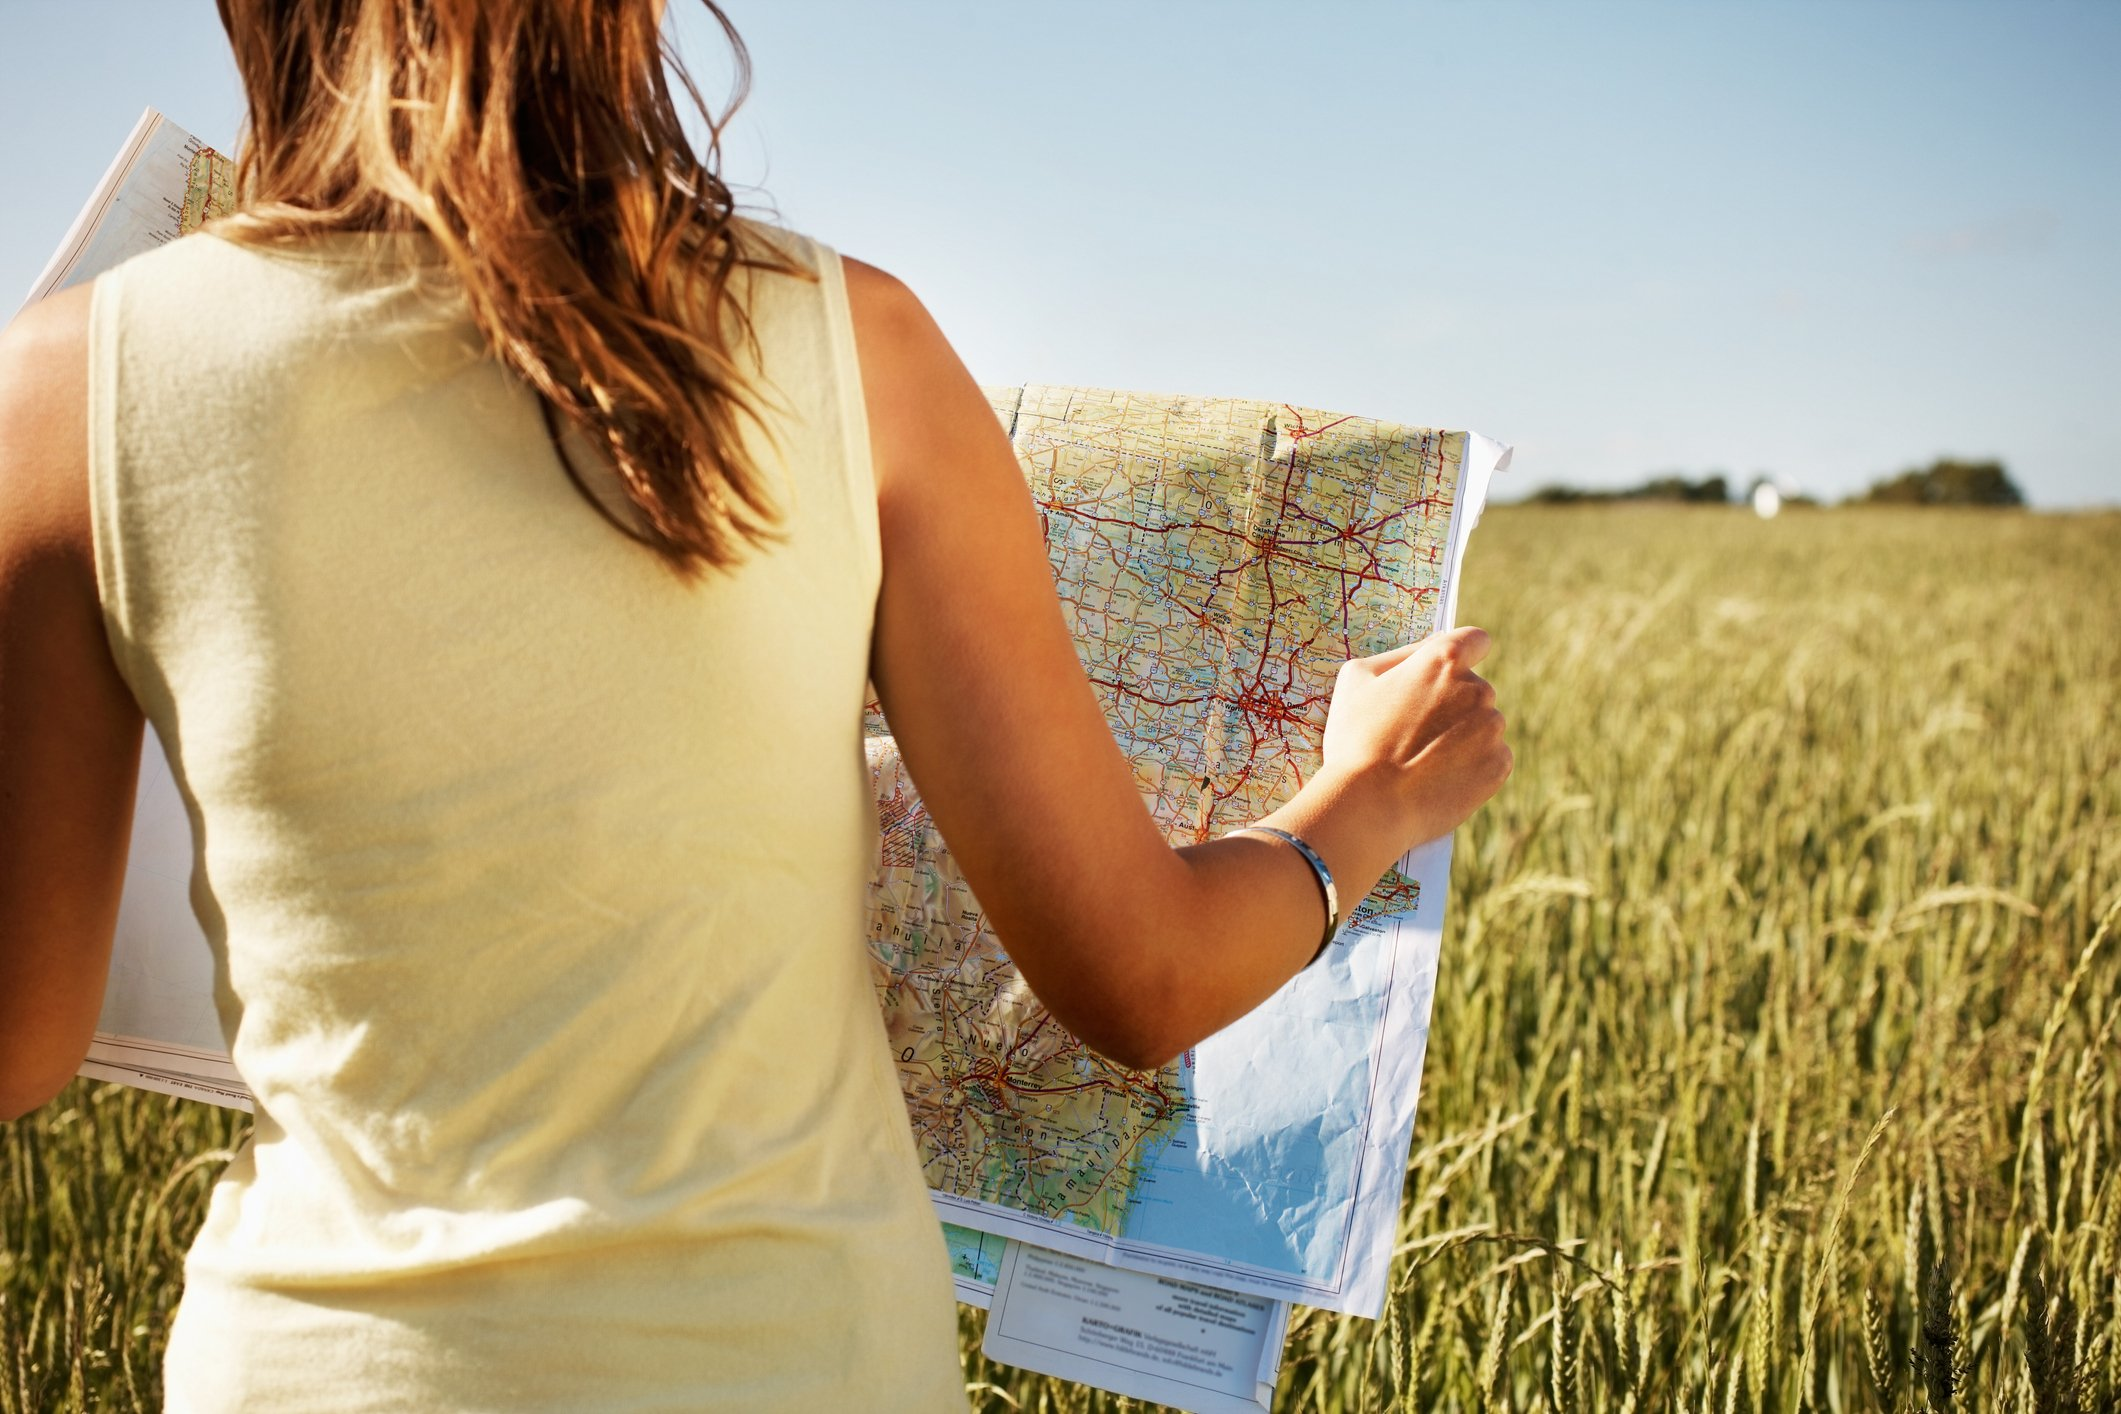 How to Read a Topograpic Map